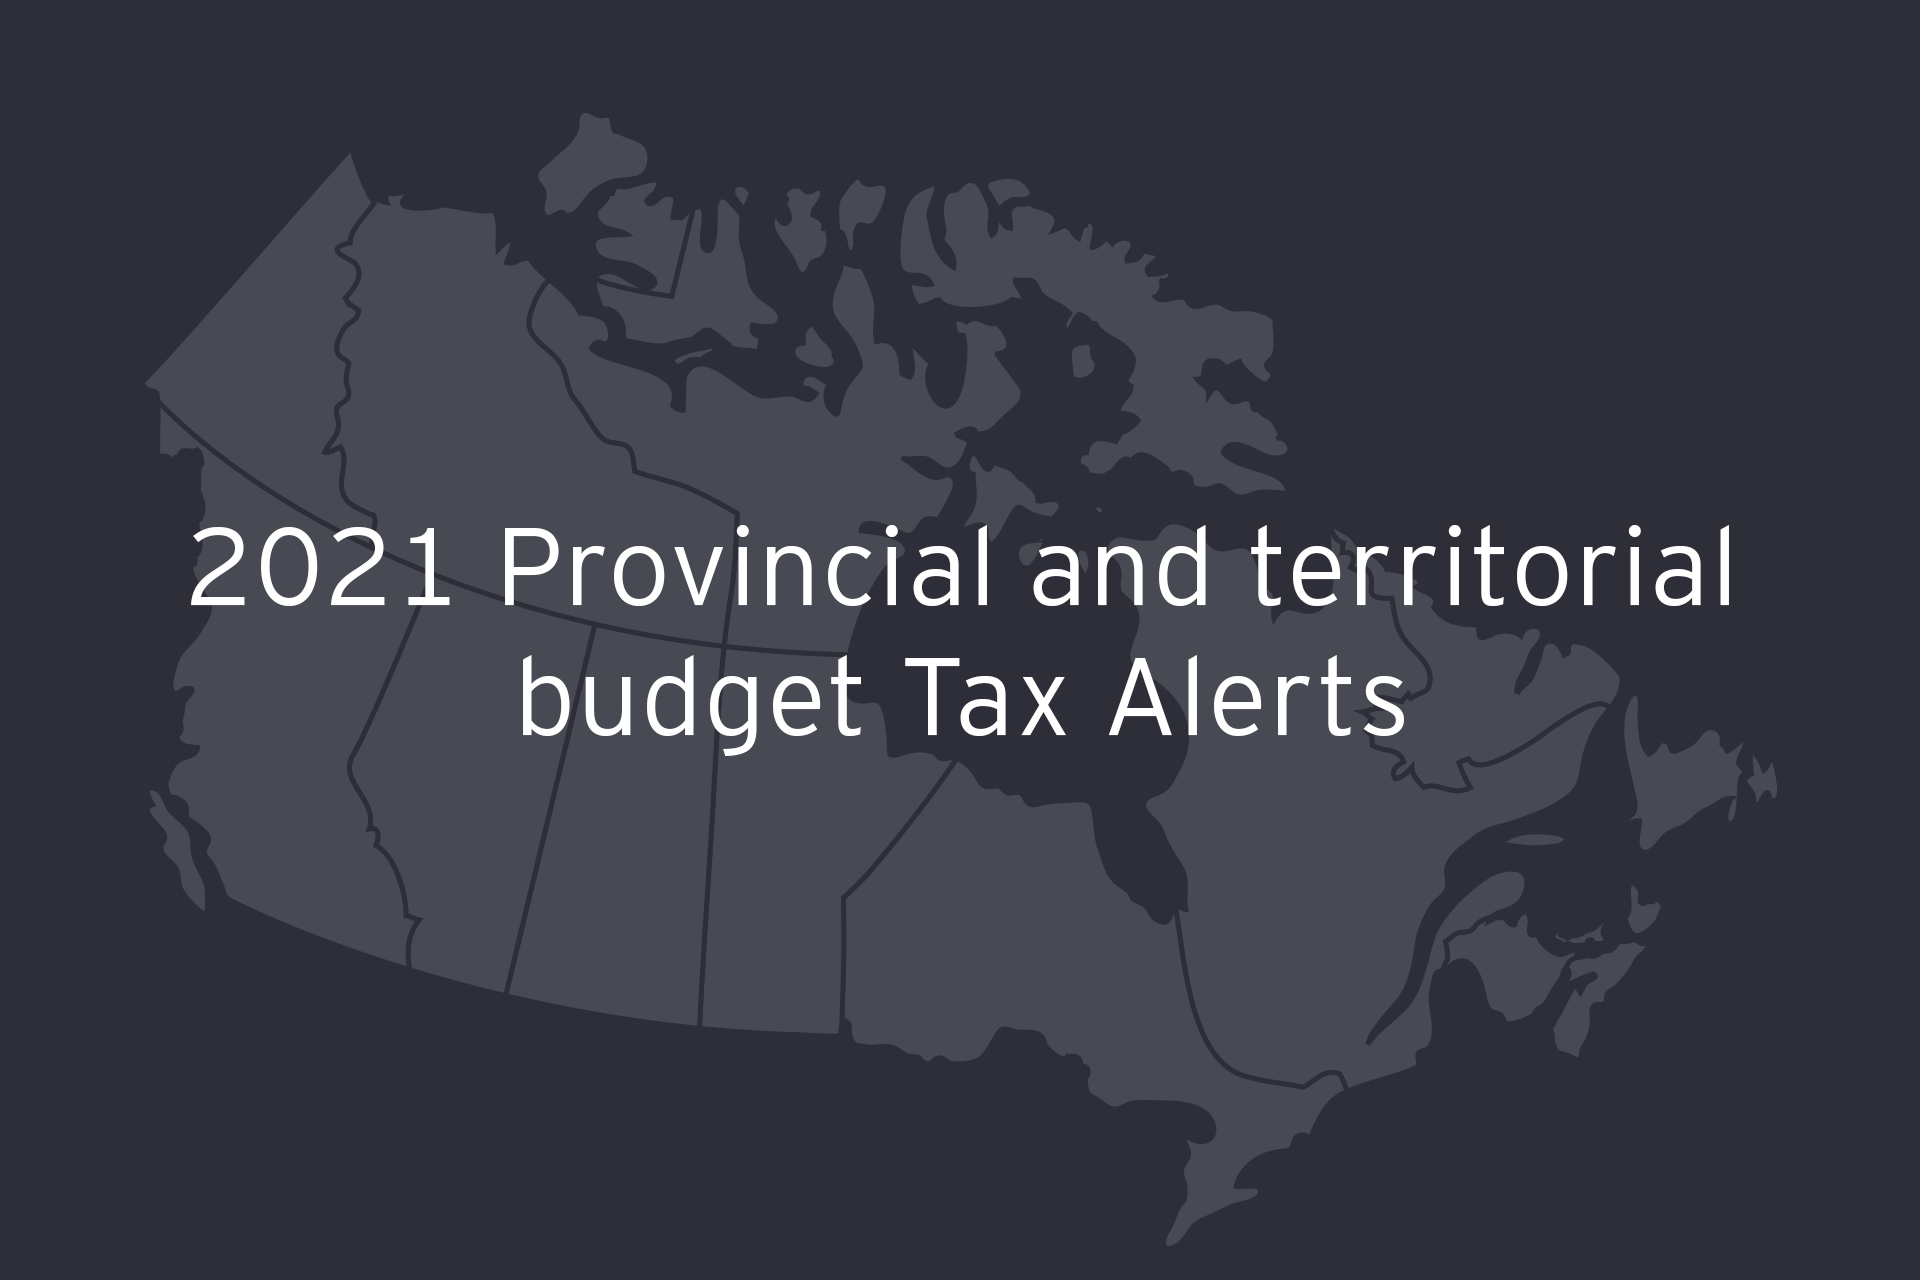 2021 Provincial and territorial budget Tax Alerts